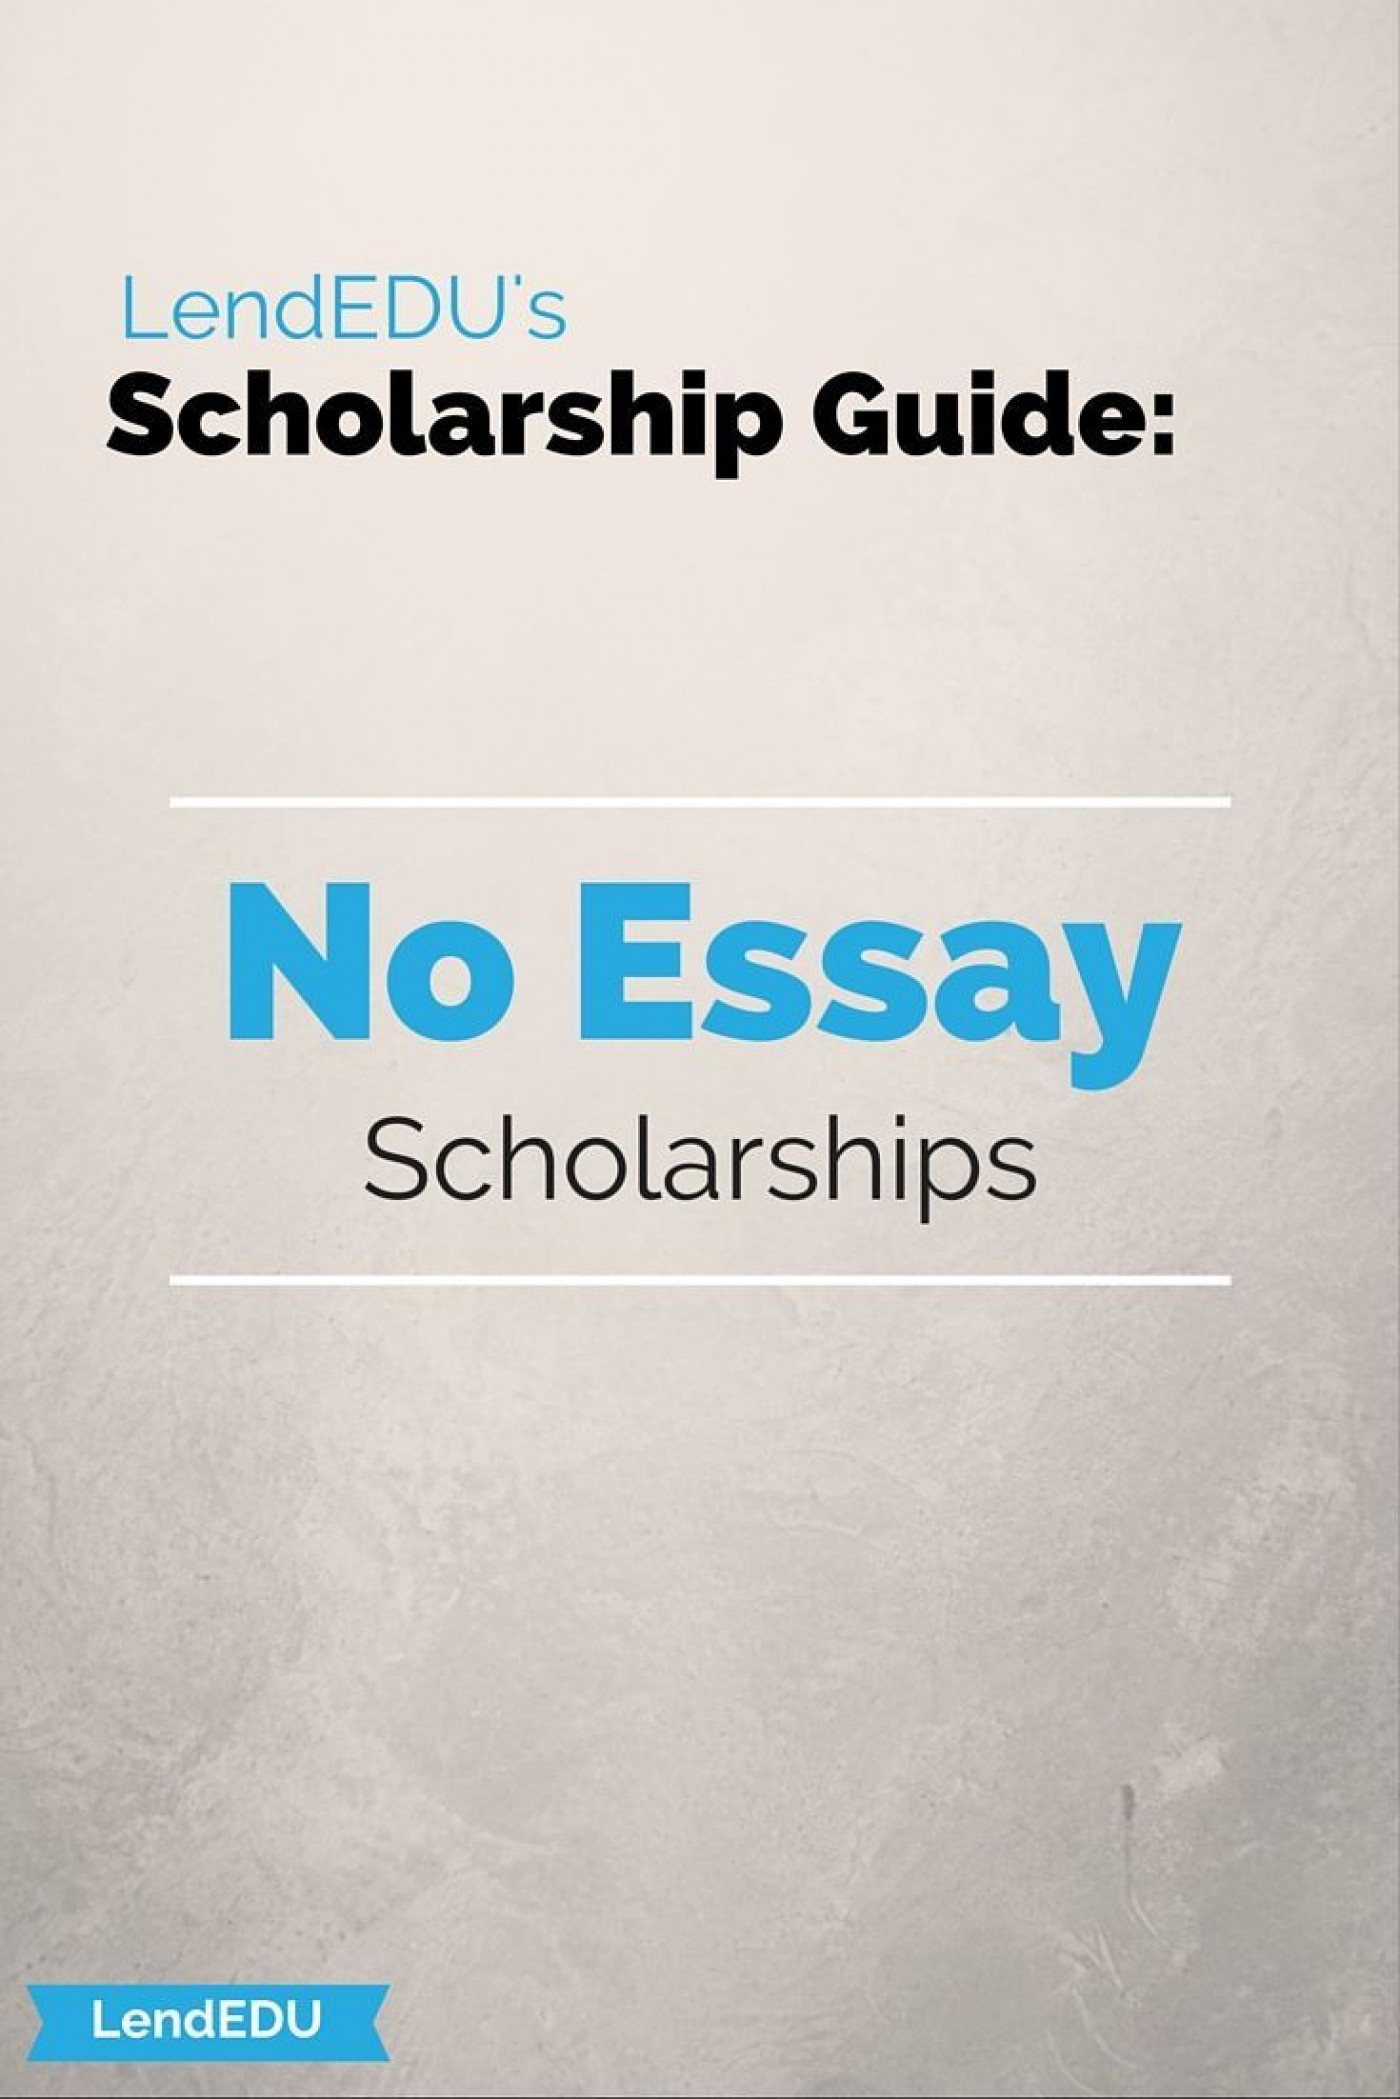 018 No Essay Scholarships Example Exceptional For Undergraduates High School Seniors College Students 2019 1400